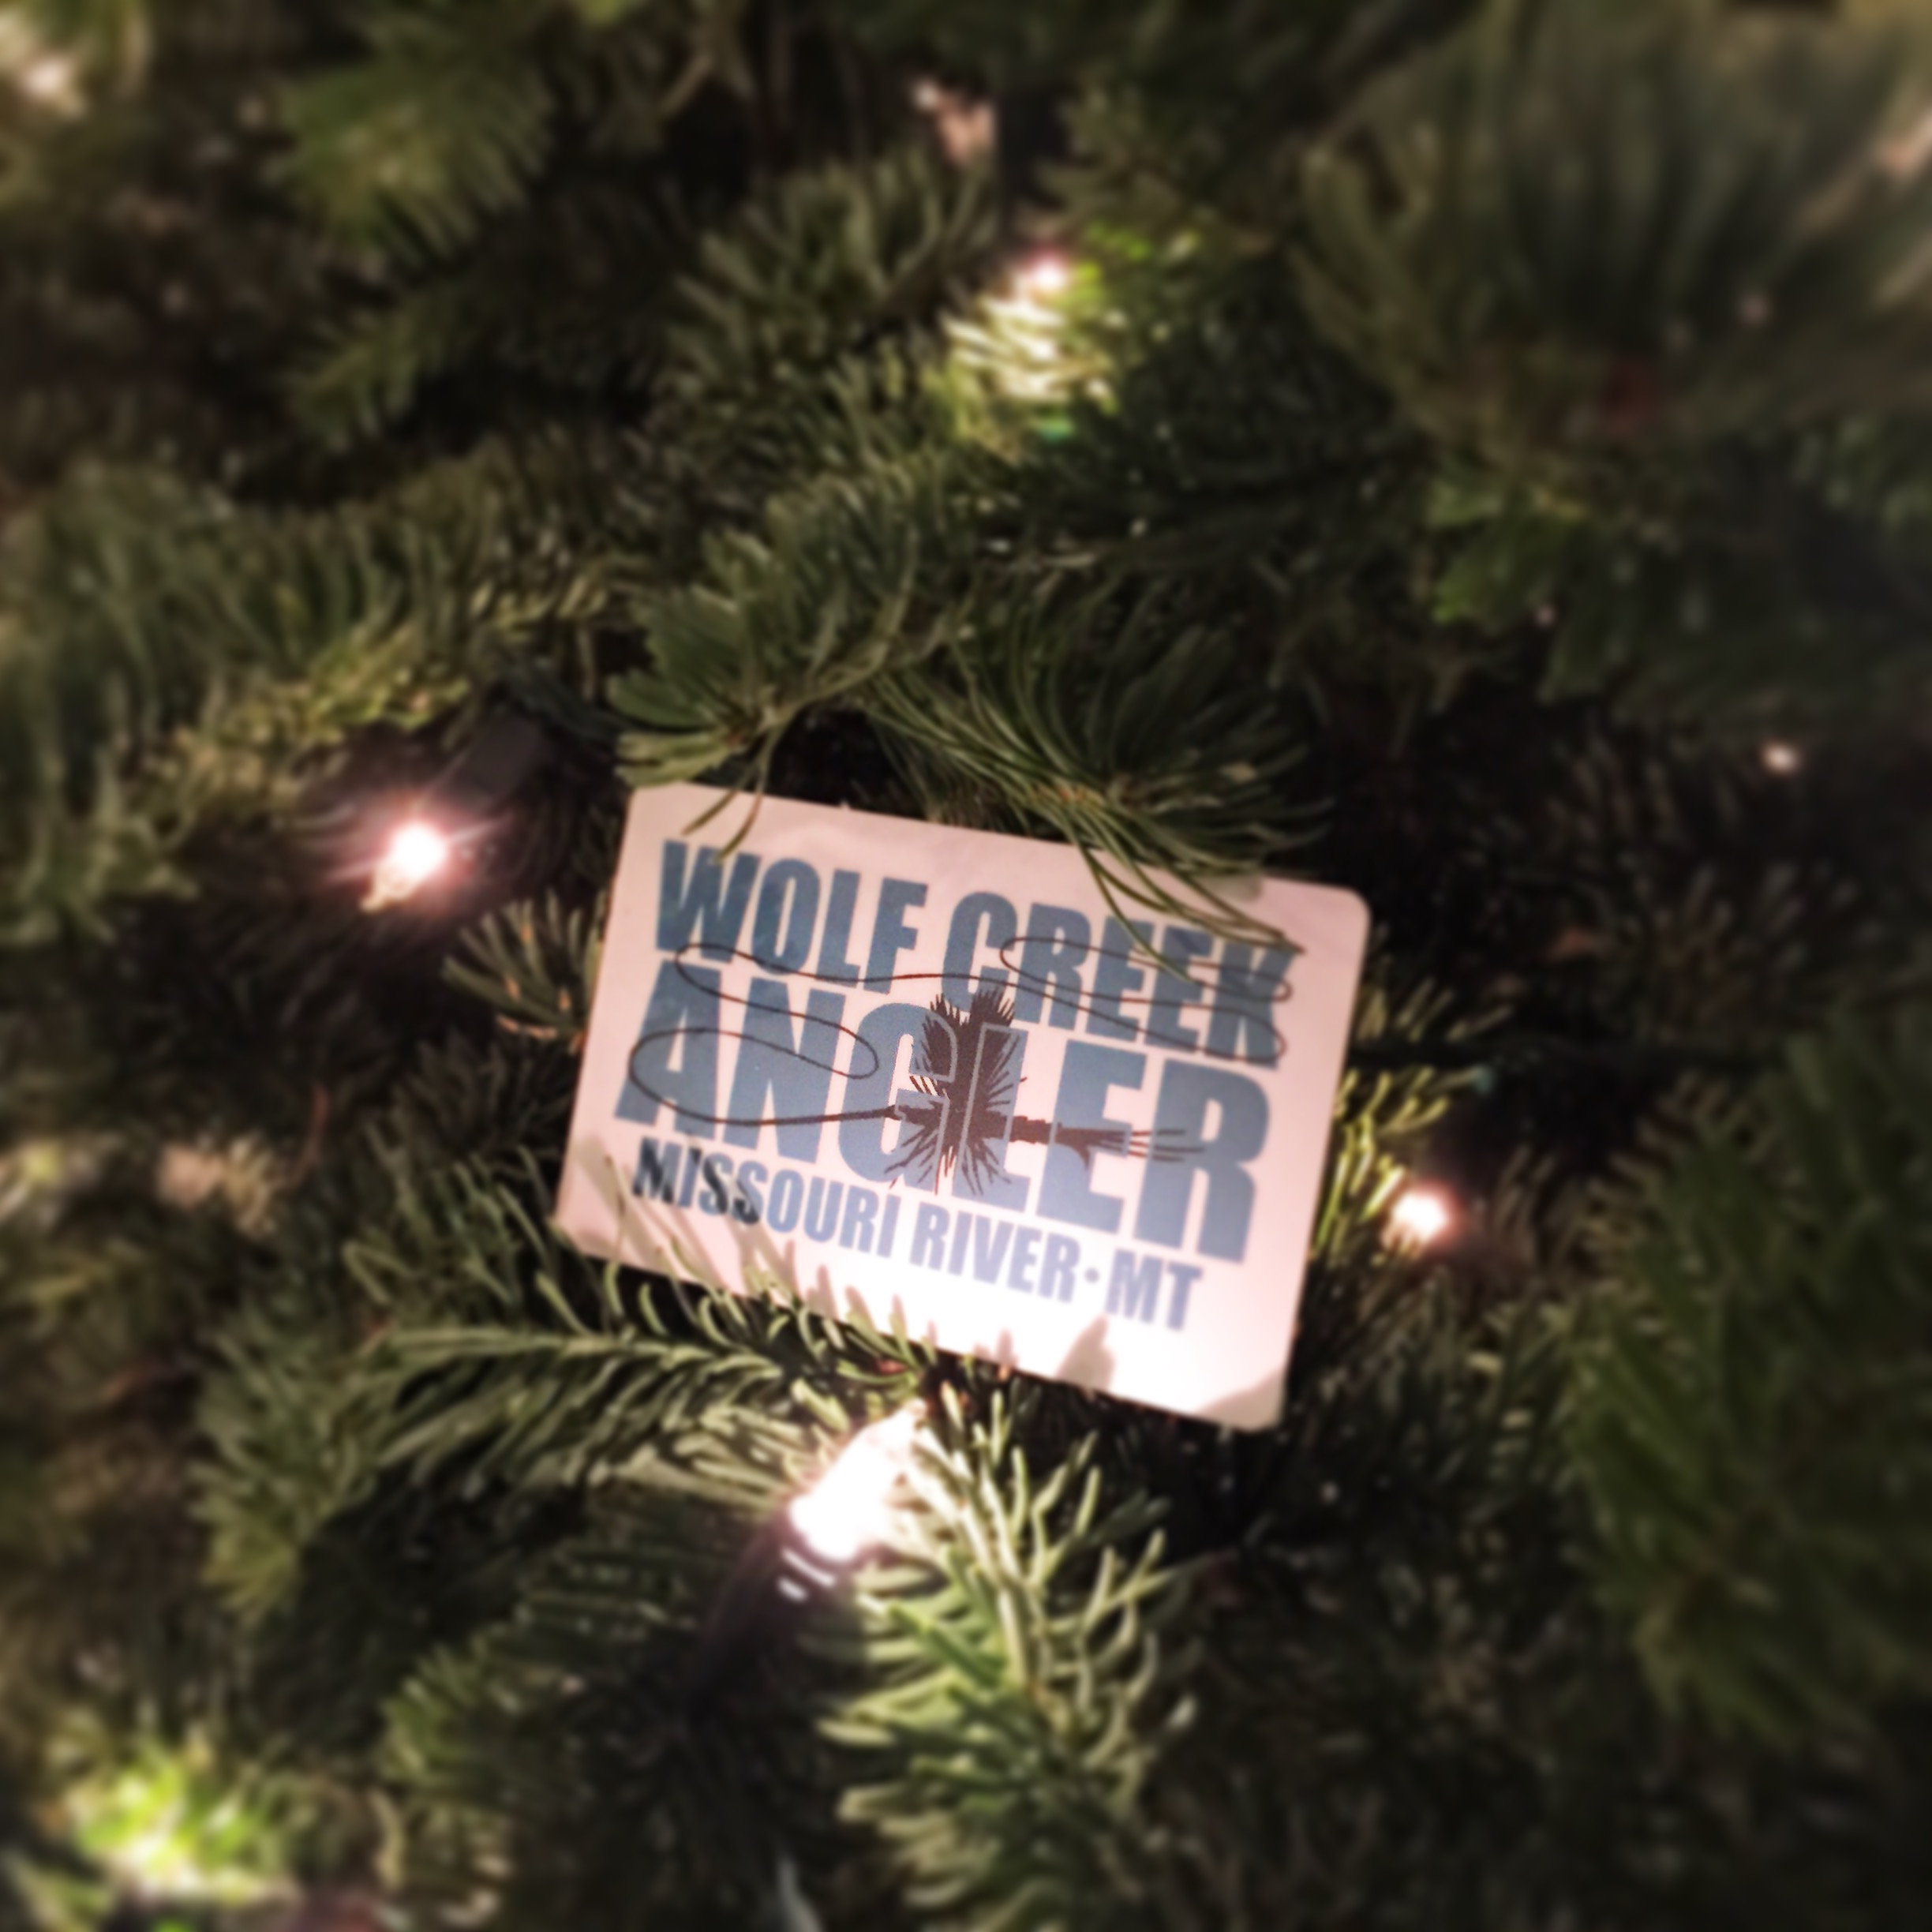 Gift Ideas from Wolf Creek Angler - Wolf Creek Angler